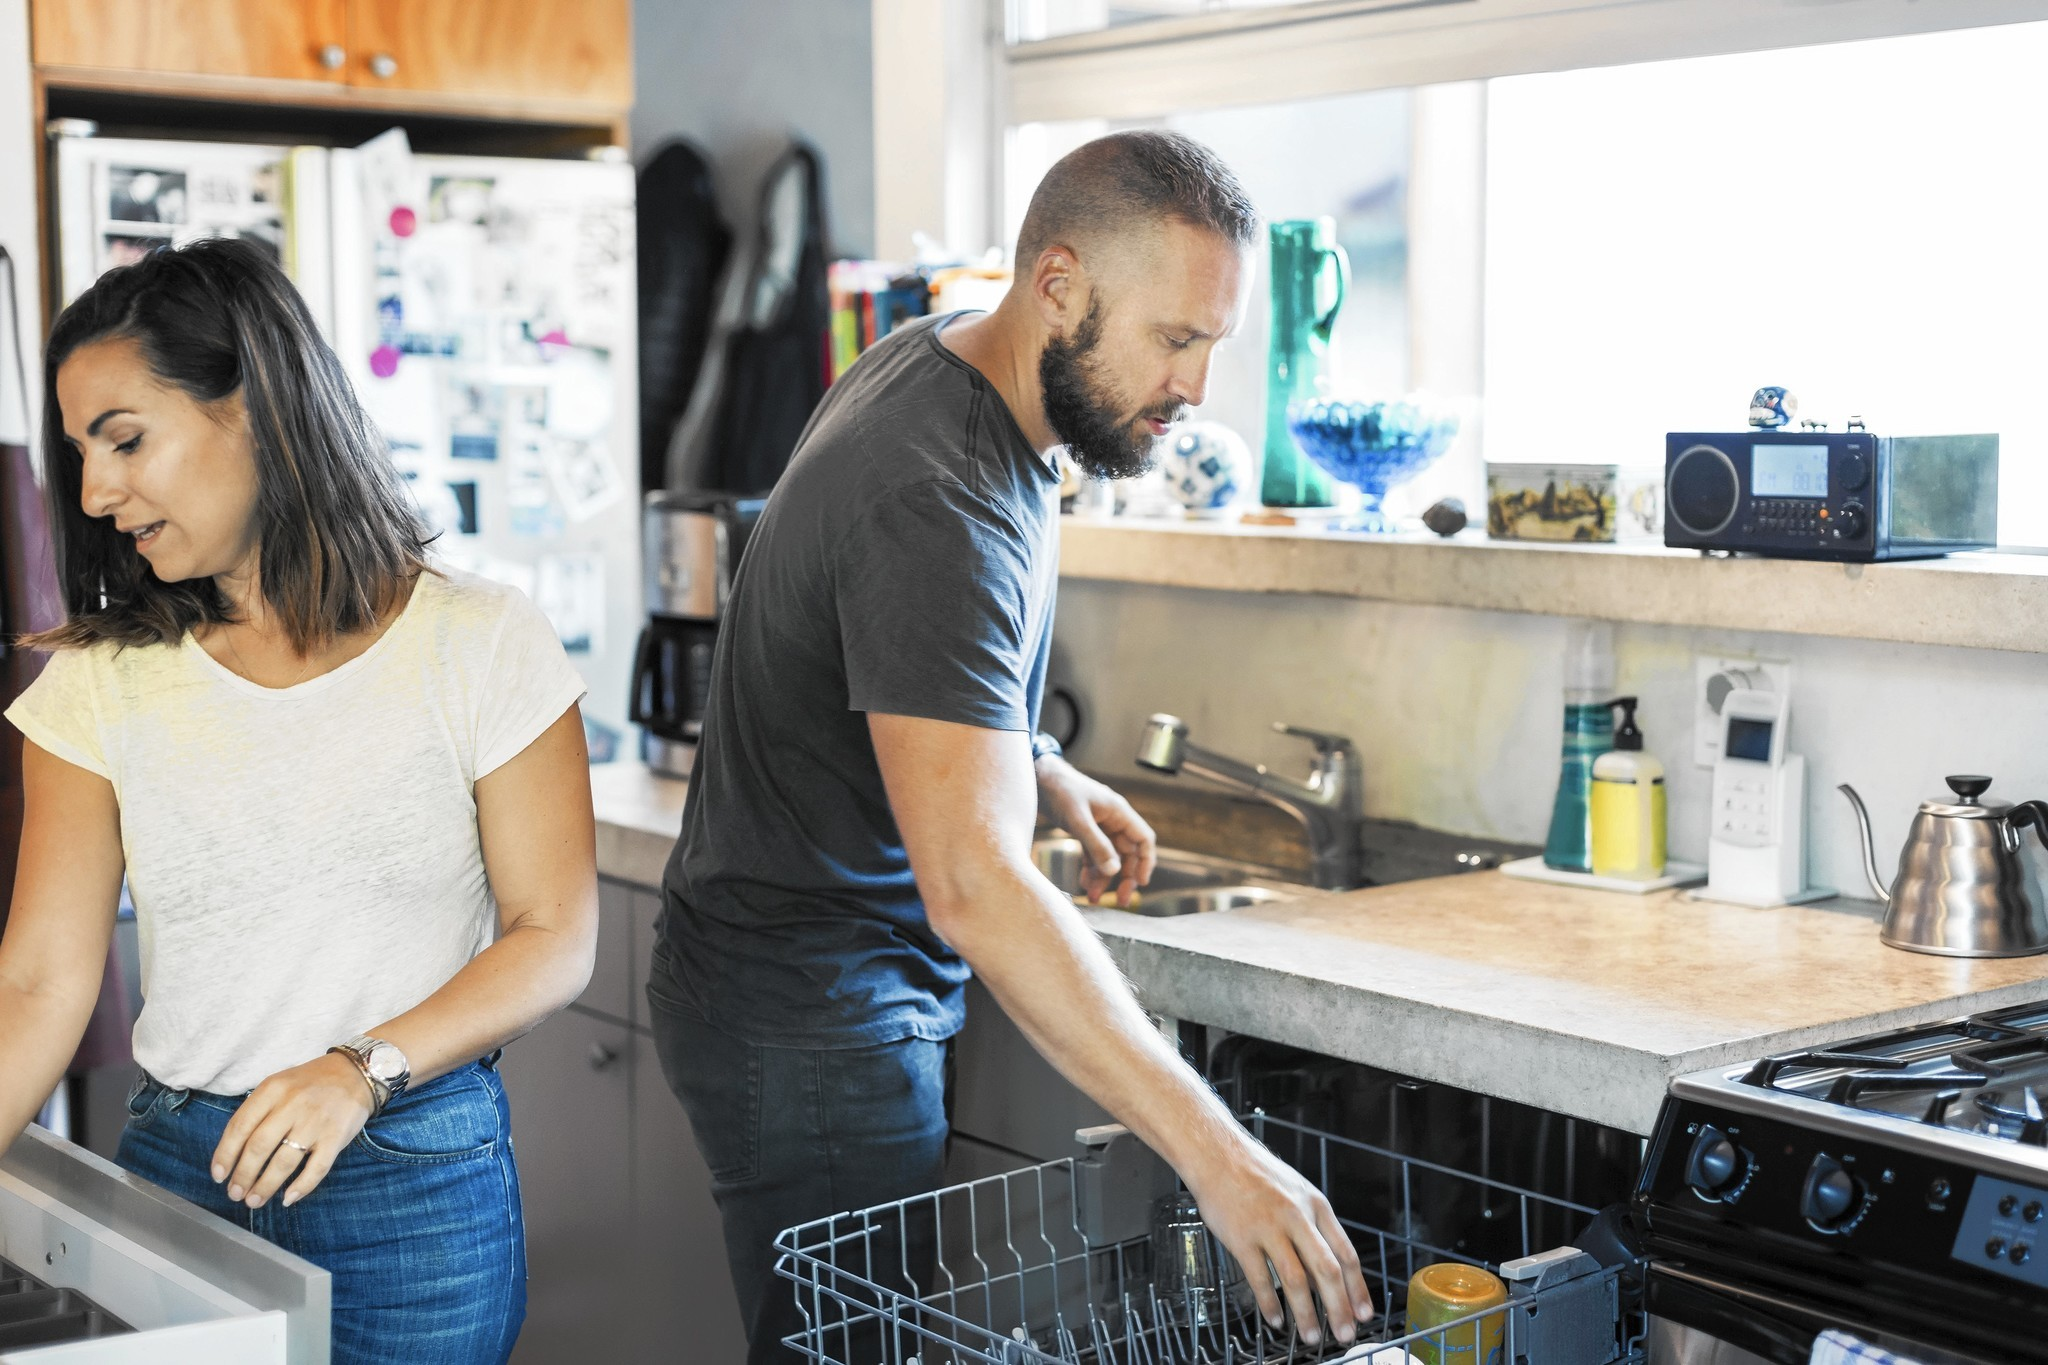 Spouses Sharing Housework Equally Argumentive Essay